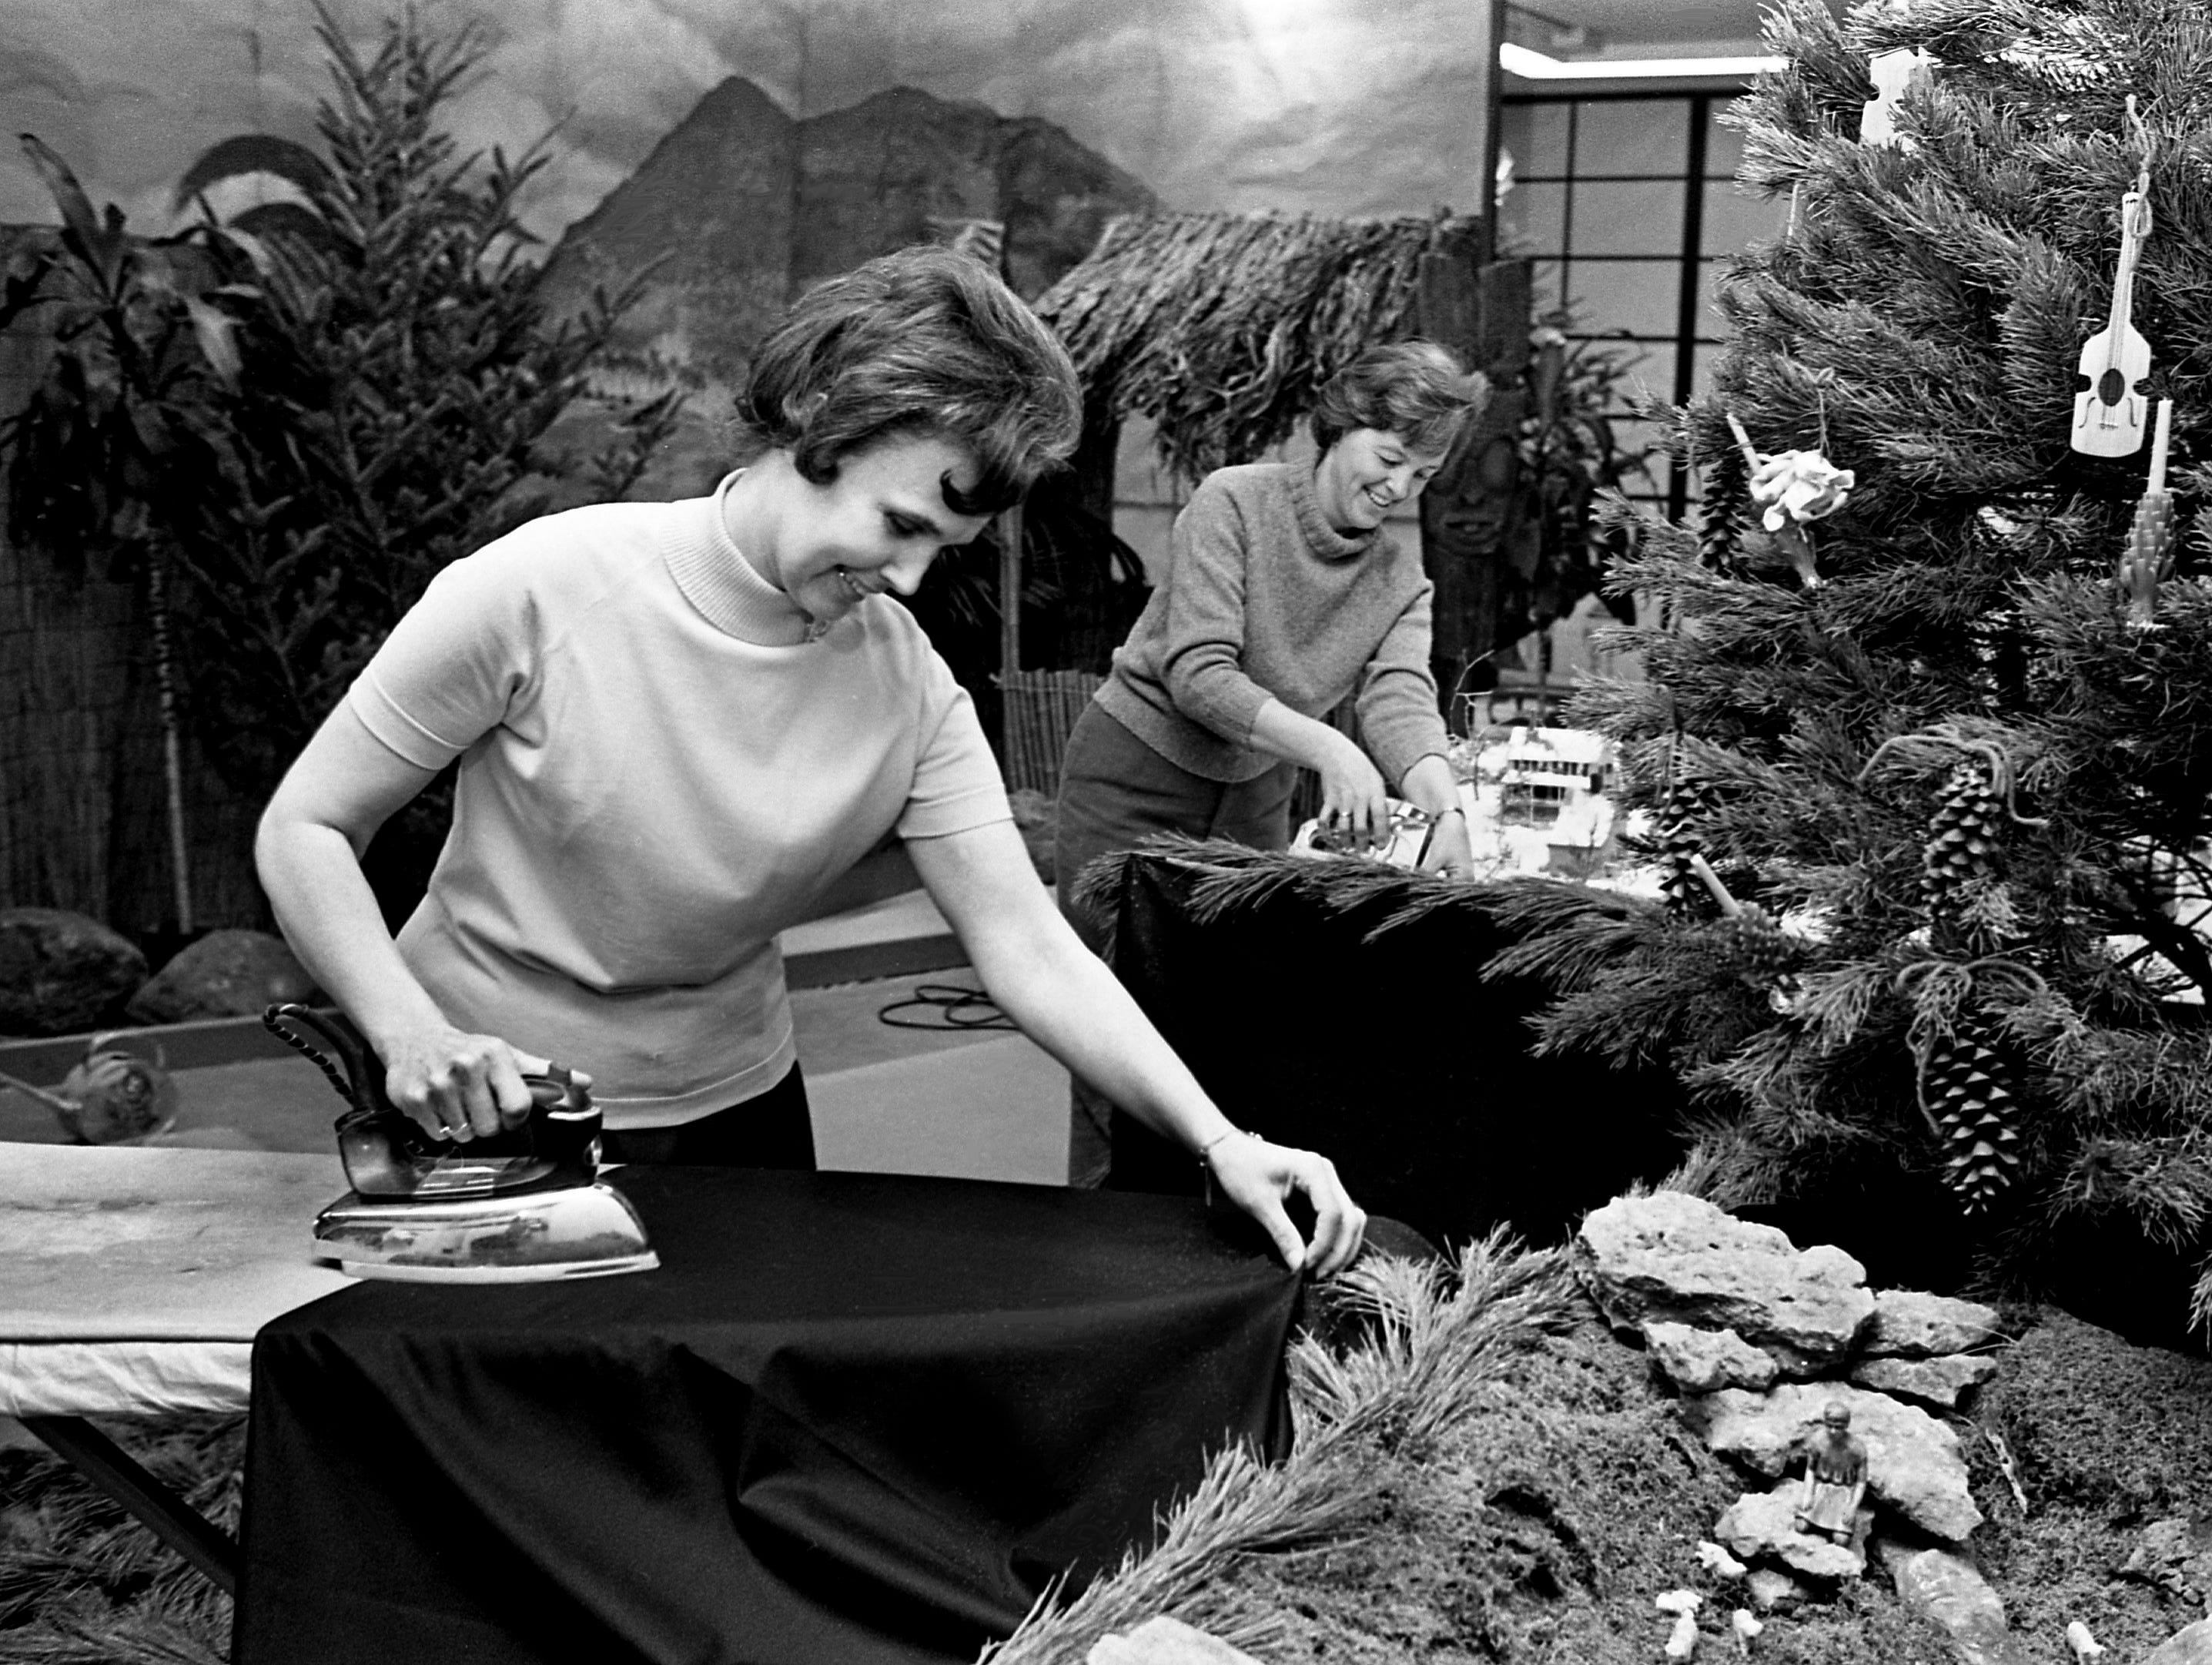 Irons and staplers were busy all week as members of more than 75 garden clubs worked on the 21 trees from many lands and seven exhibits for the upcoming fourth annual Christmas at Cheekwood event. Ironing material for the skirts of the Fleur de Lis Garden Club exhibit Dec. 3, 1968, is Mrs. Lem Tanksley, left, and stapling is Mrs. O.D. Glaus.